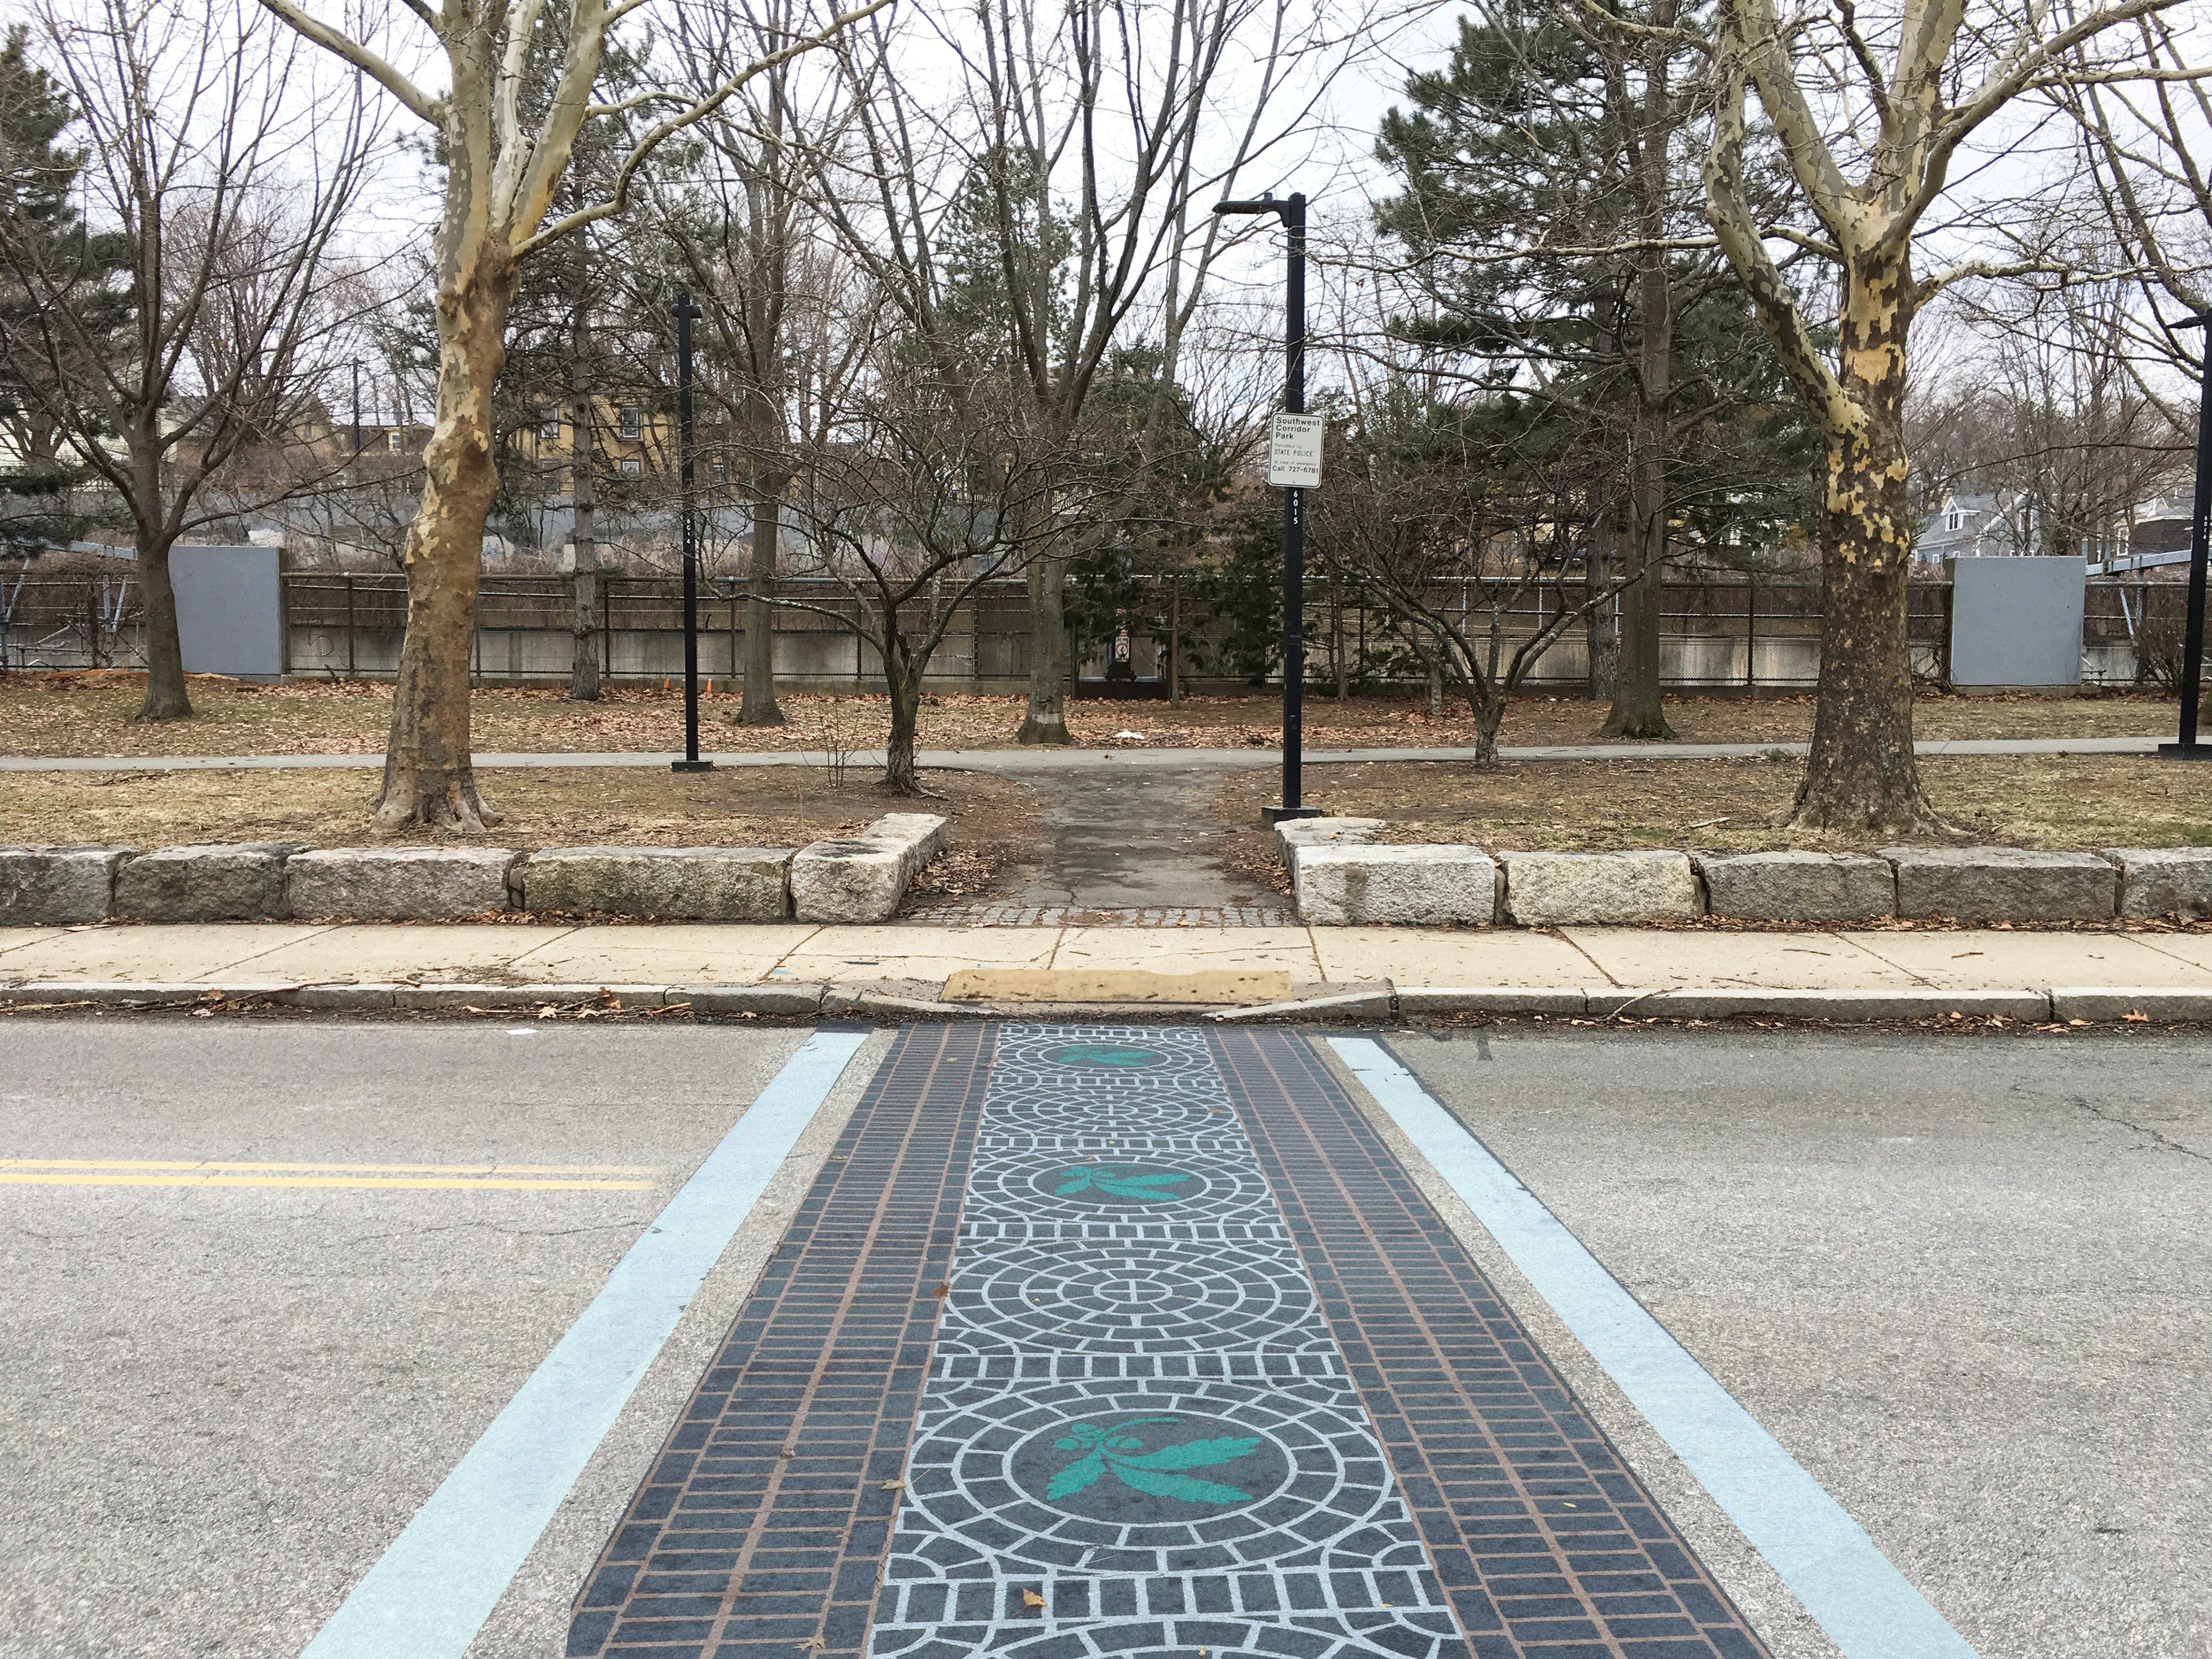 After:  Curb cut and colorful crosswalk to make the crossing safer.